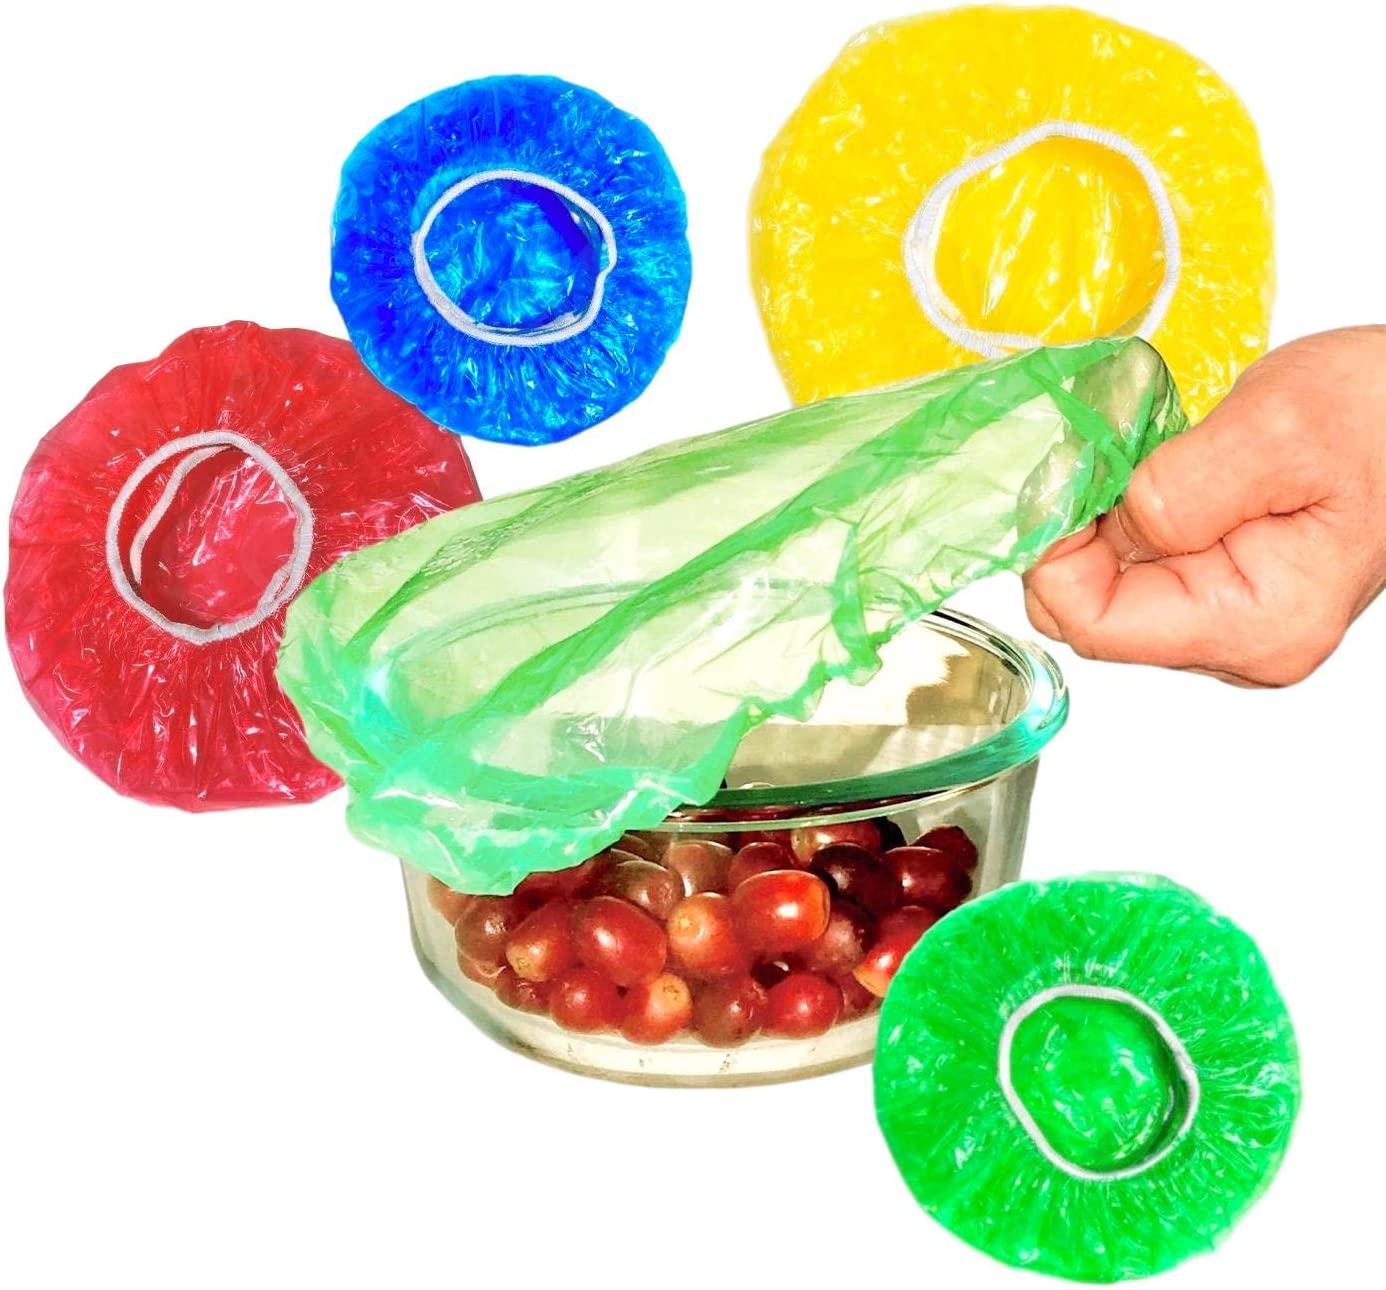 All Size Colorful Plastic Covers For Food Storage Wrap Elastic Covers For Bowls, Plates, Dishes - 50 Reusable, Disposable Bowl Covers for Leftovers, Picnic Outdoor Food Cover xl, Large, Medium, Small